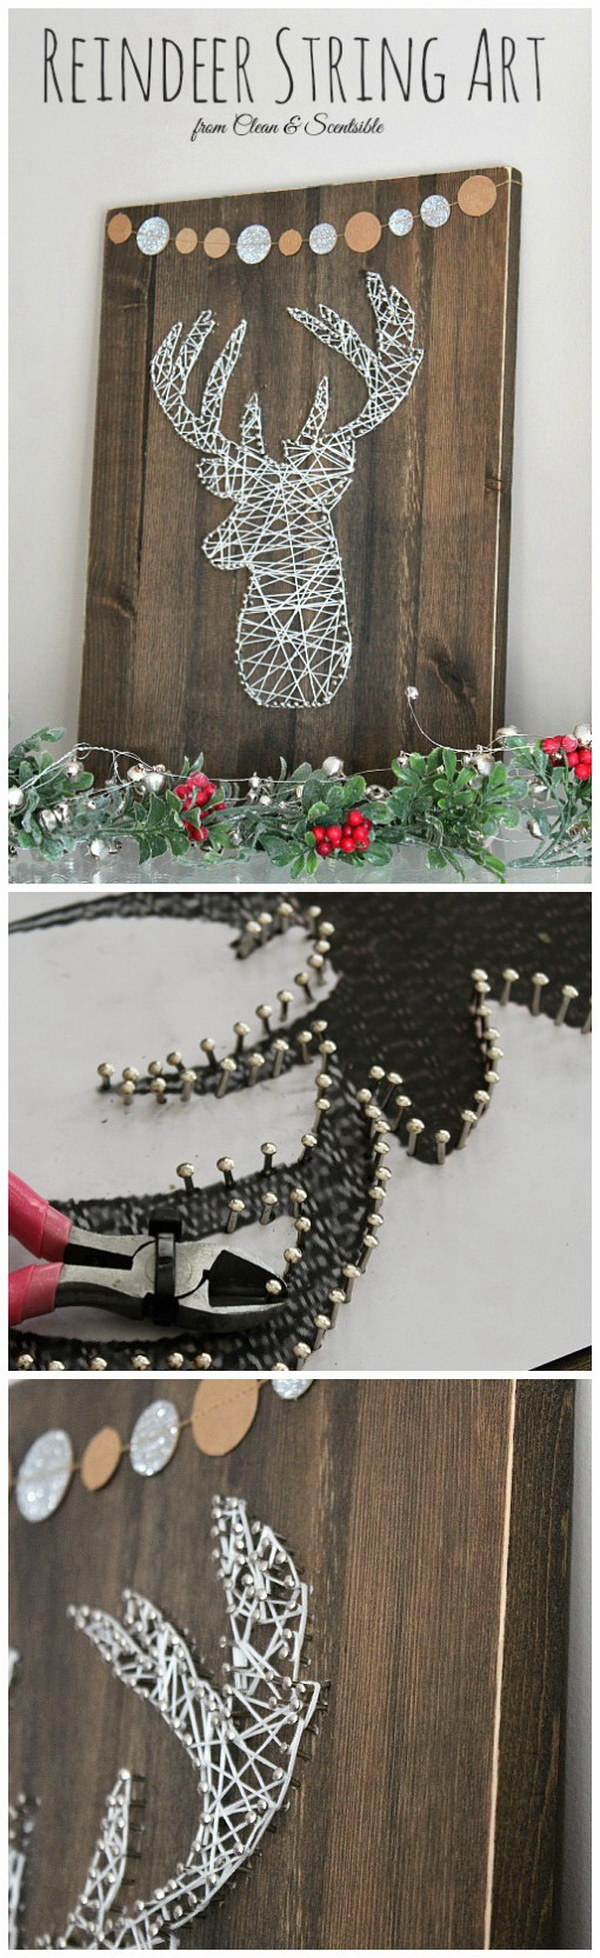 Deer Head String Art. Make an elegant and beautiful deer head string art craft for that rustic glam touch to your farmhouse Christmas decor!